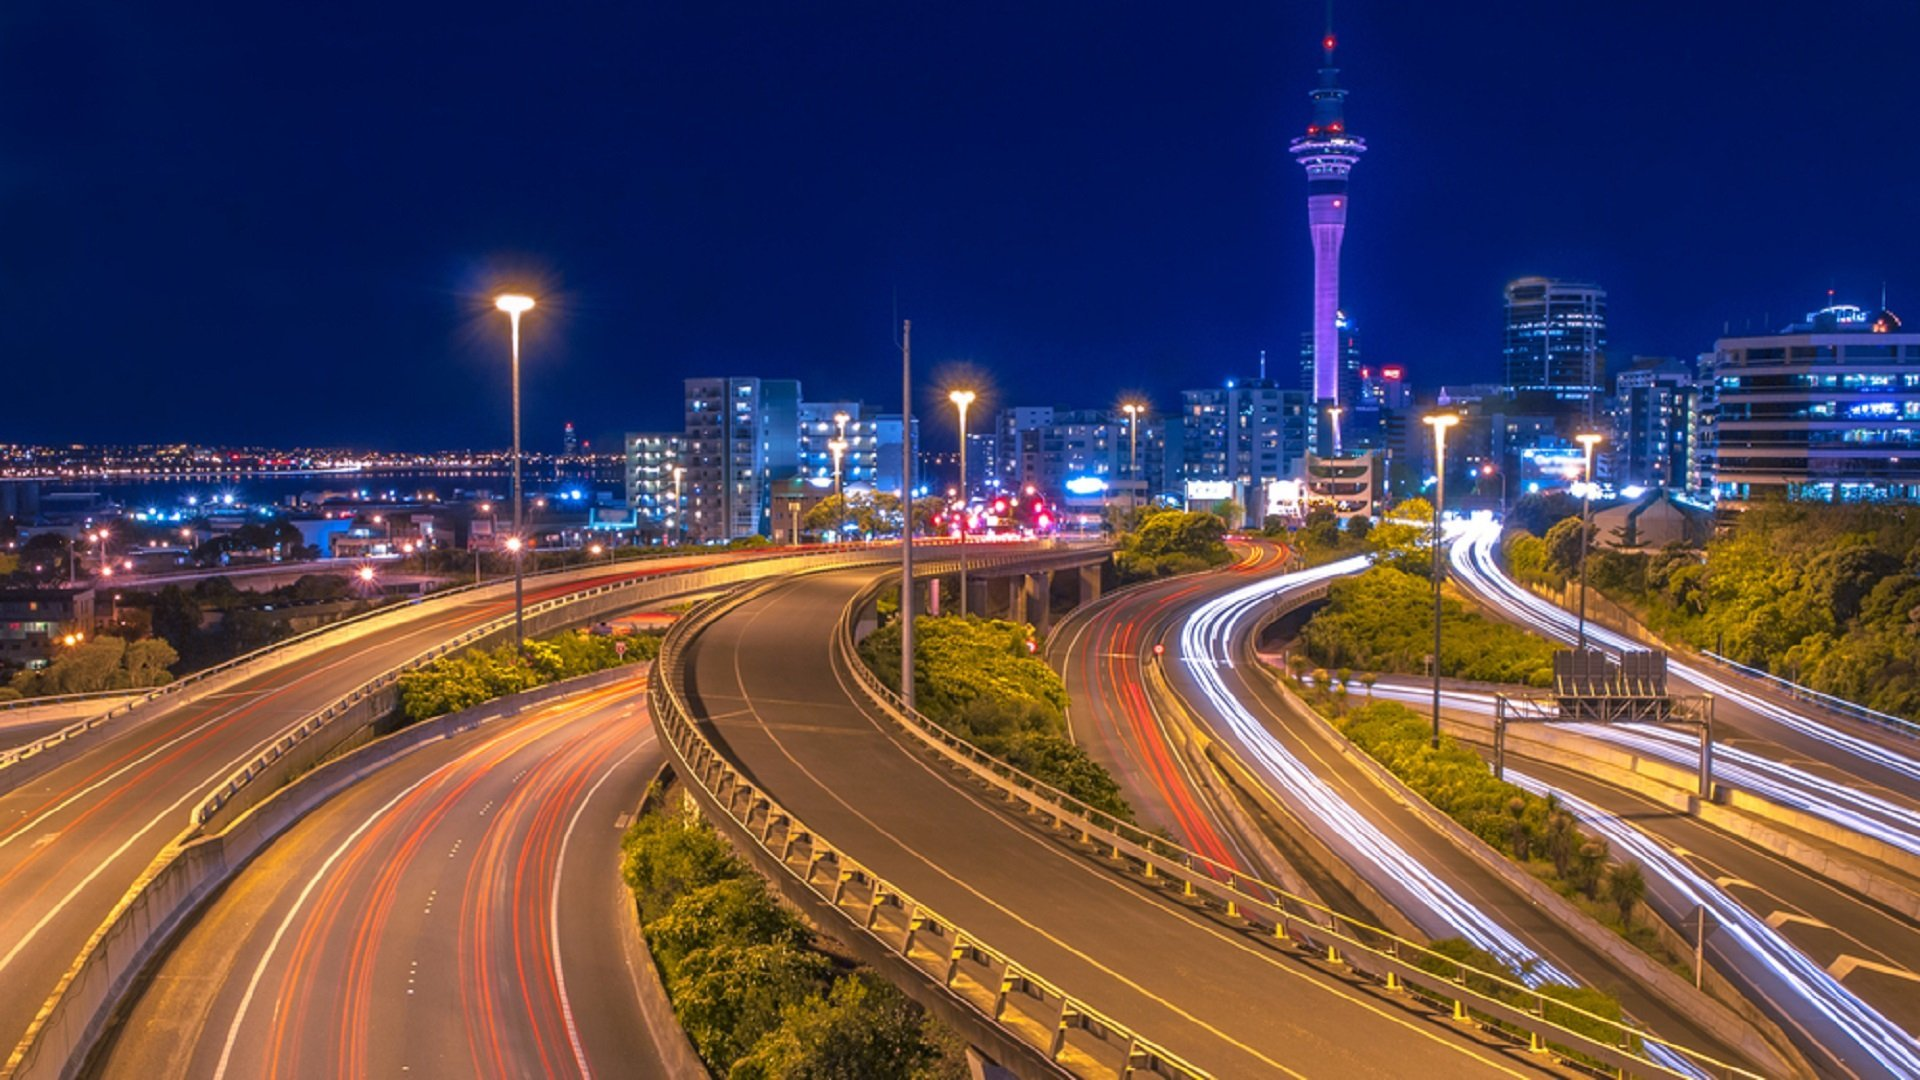 Best Destinations To Visit In Auckland New Zealand Auckland Vacation Travel Guide Zen Tripstar trip explore attractions tourist guide